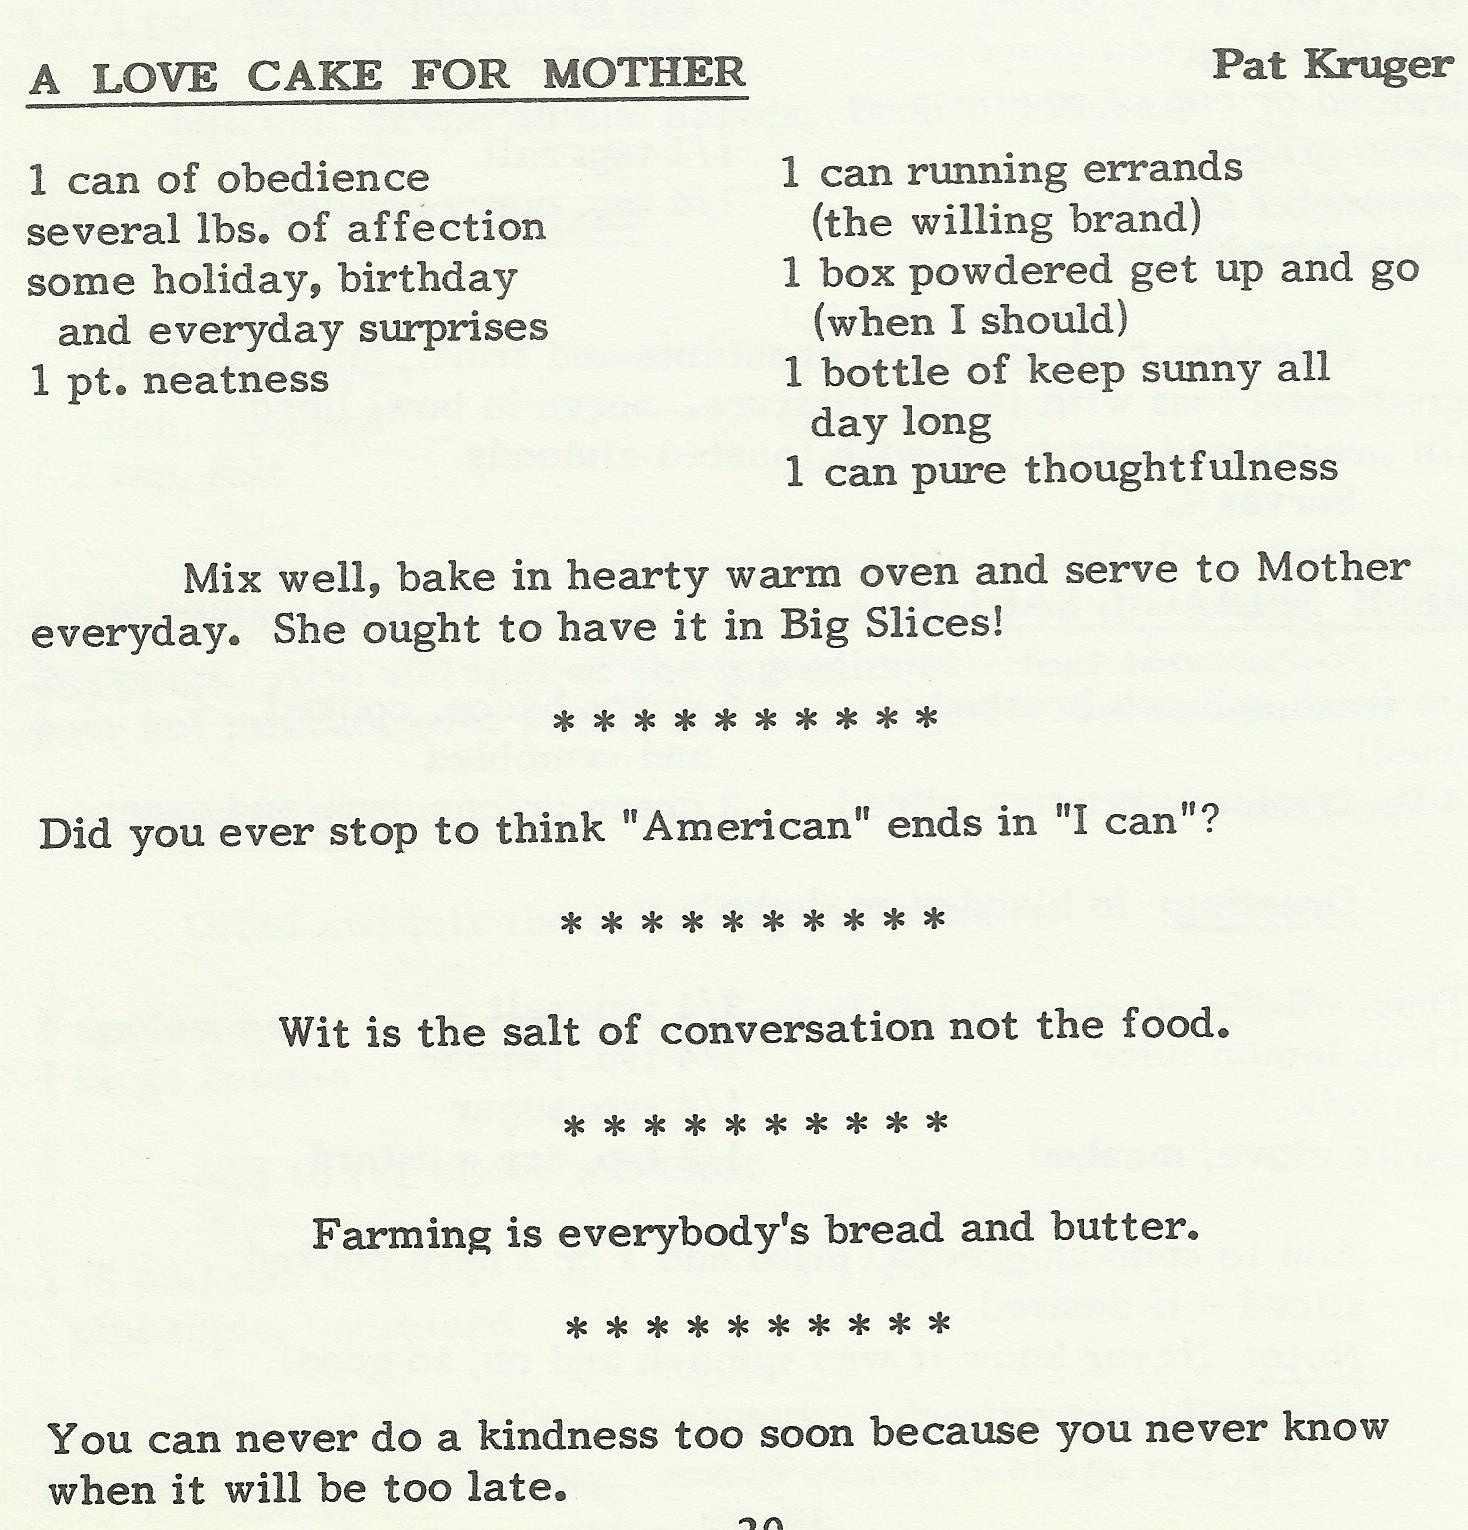 A Love Cake For Mother